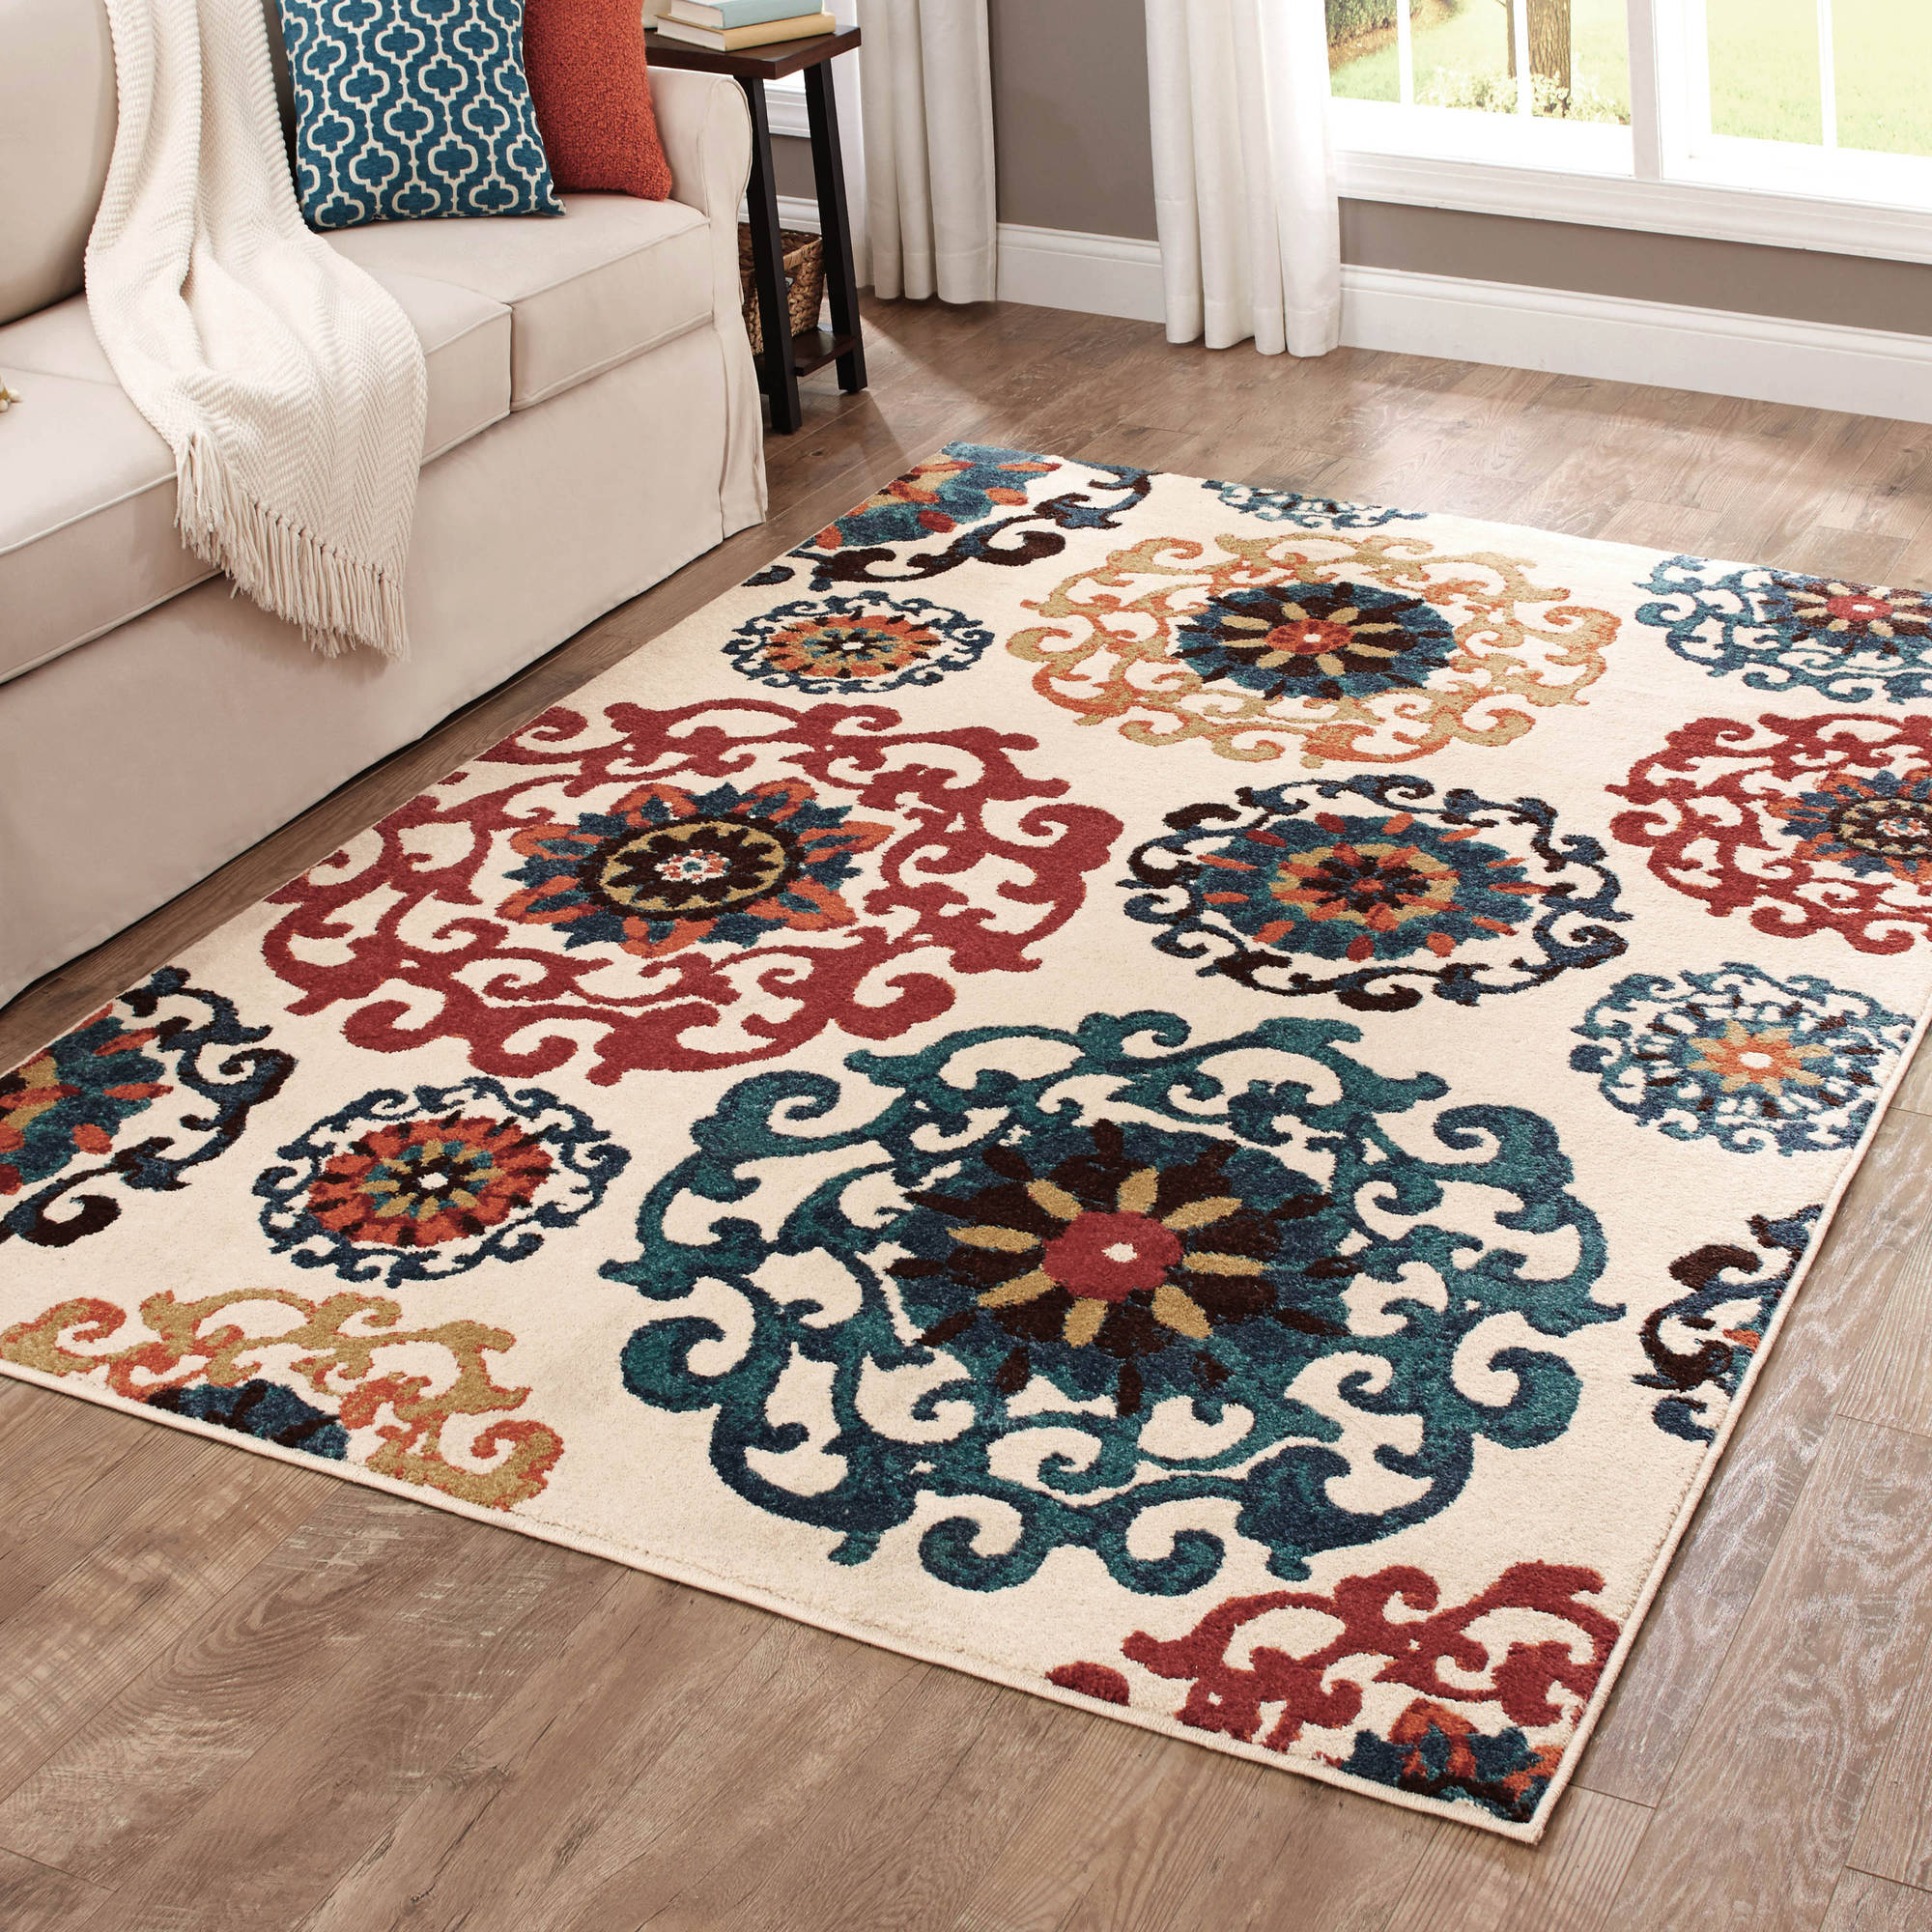 home rugs laundry room rug | home depot rugs 6x9 | rug floor mats FKHNYYP